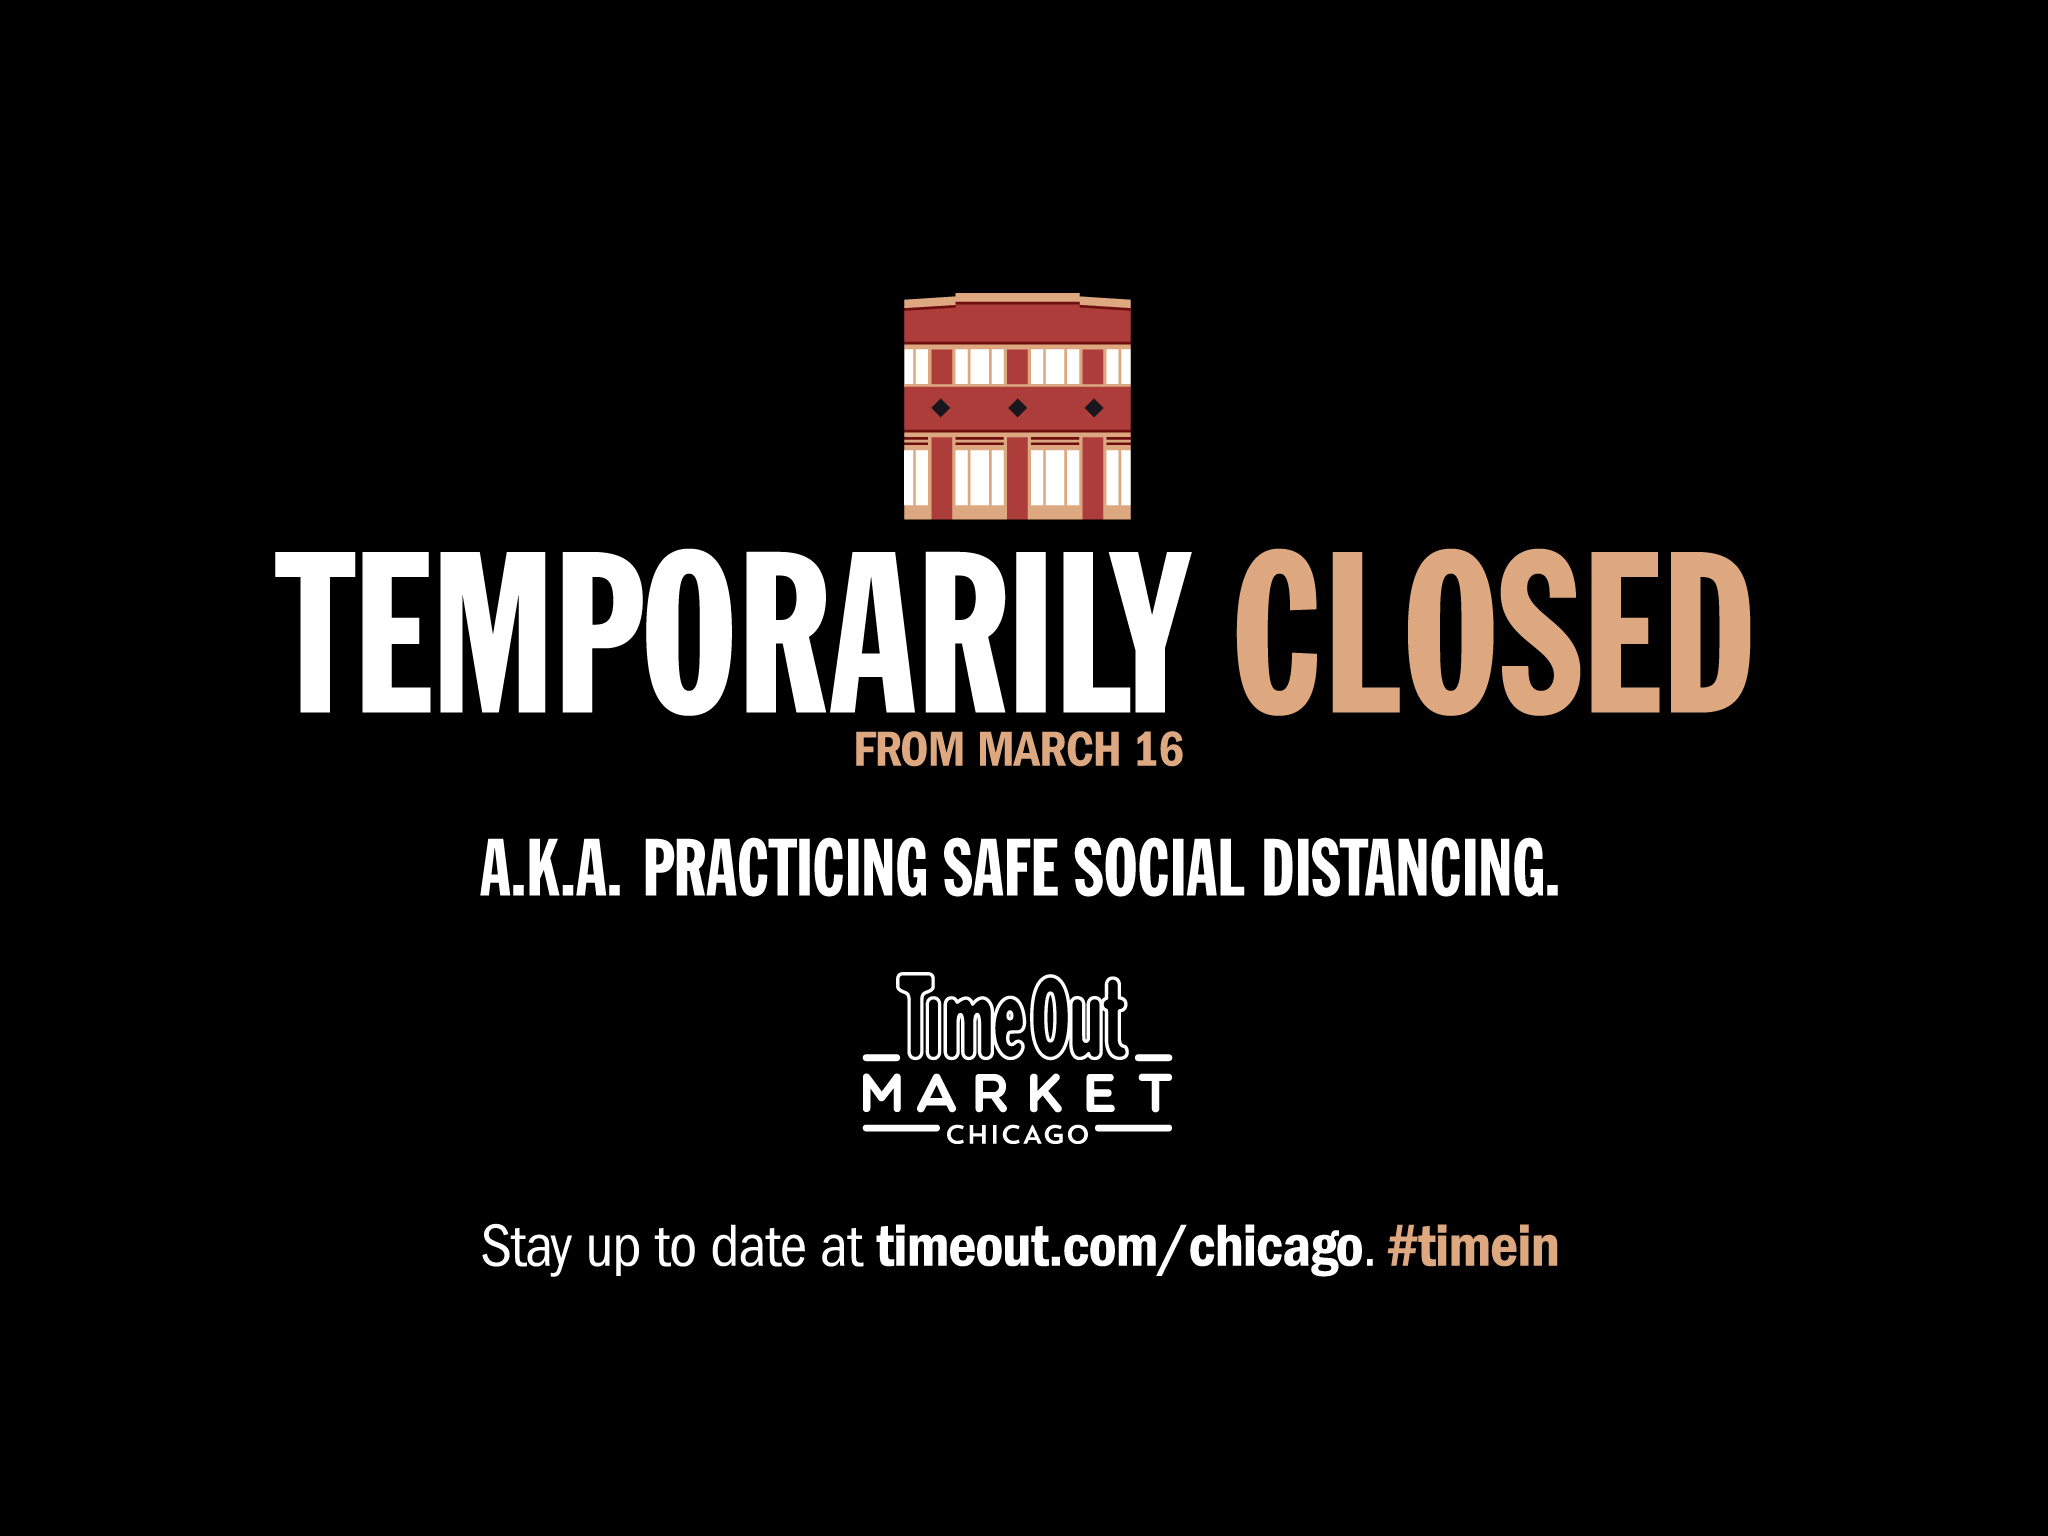 Time Out Market Chicago is closed temporarily beginning March 16